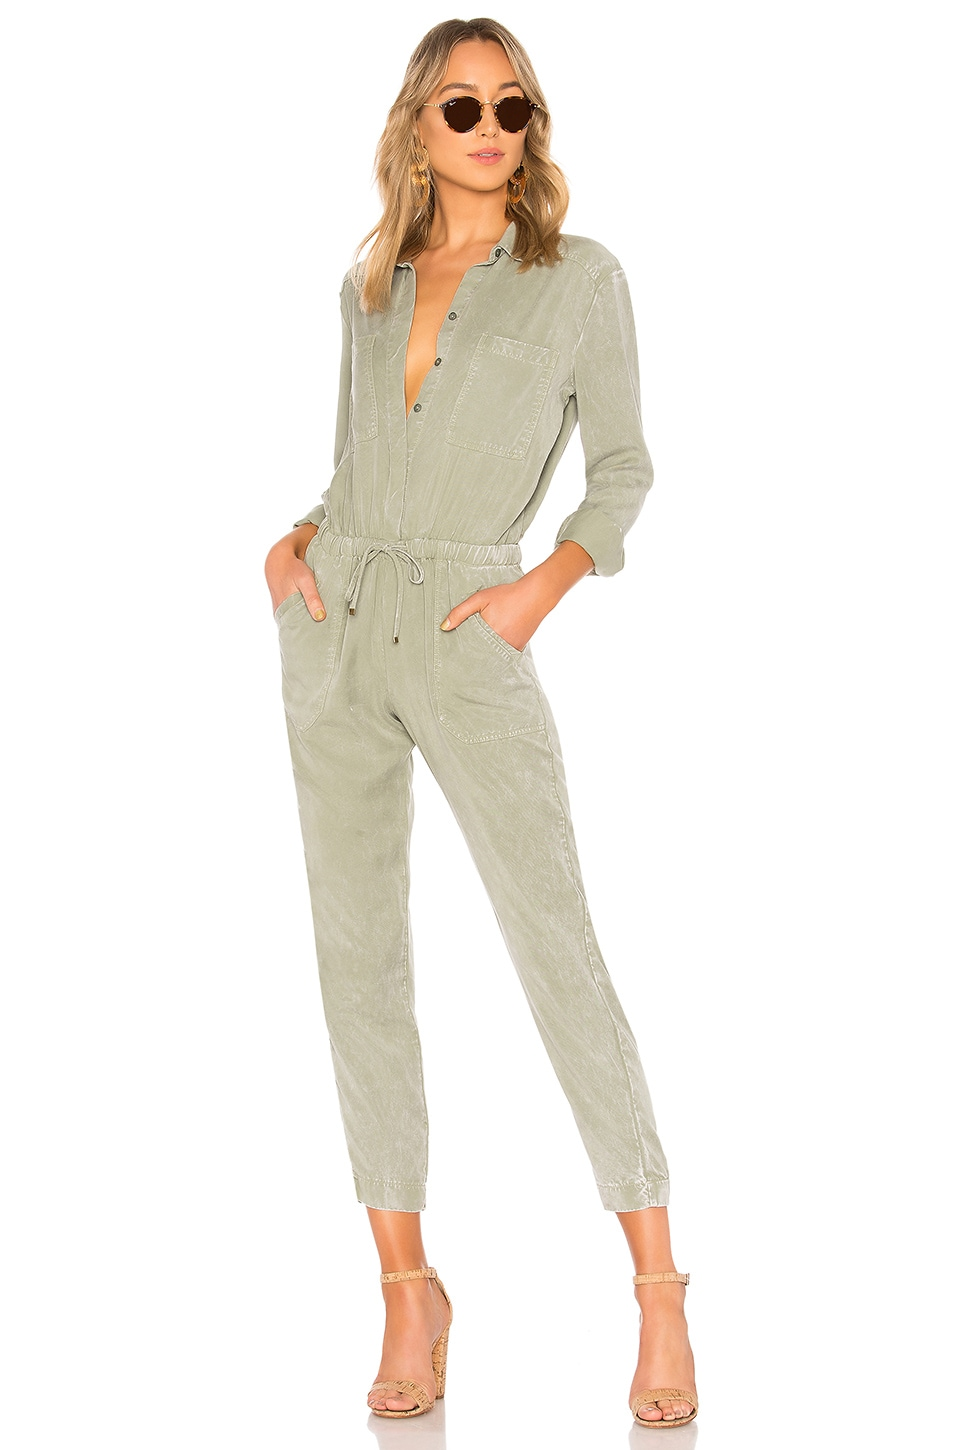 YFB CLOTHING Everest Jumpsuit in Sage AW